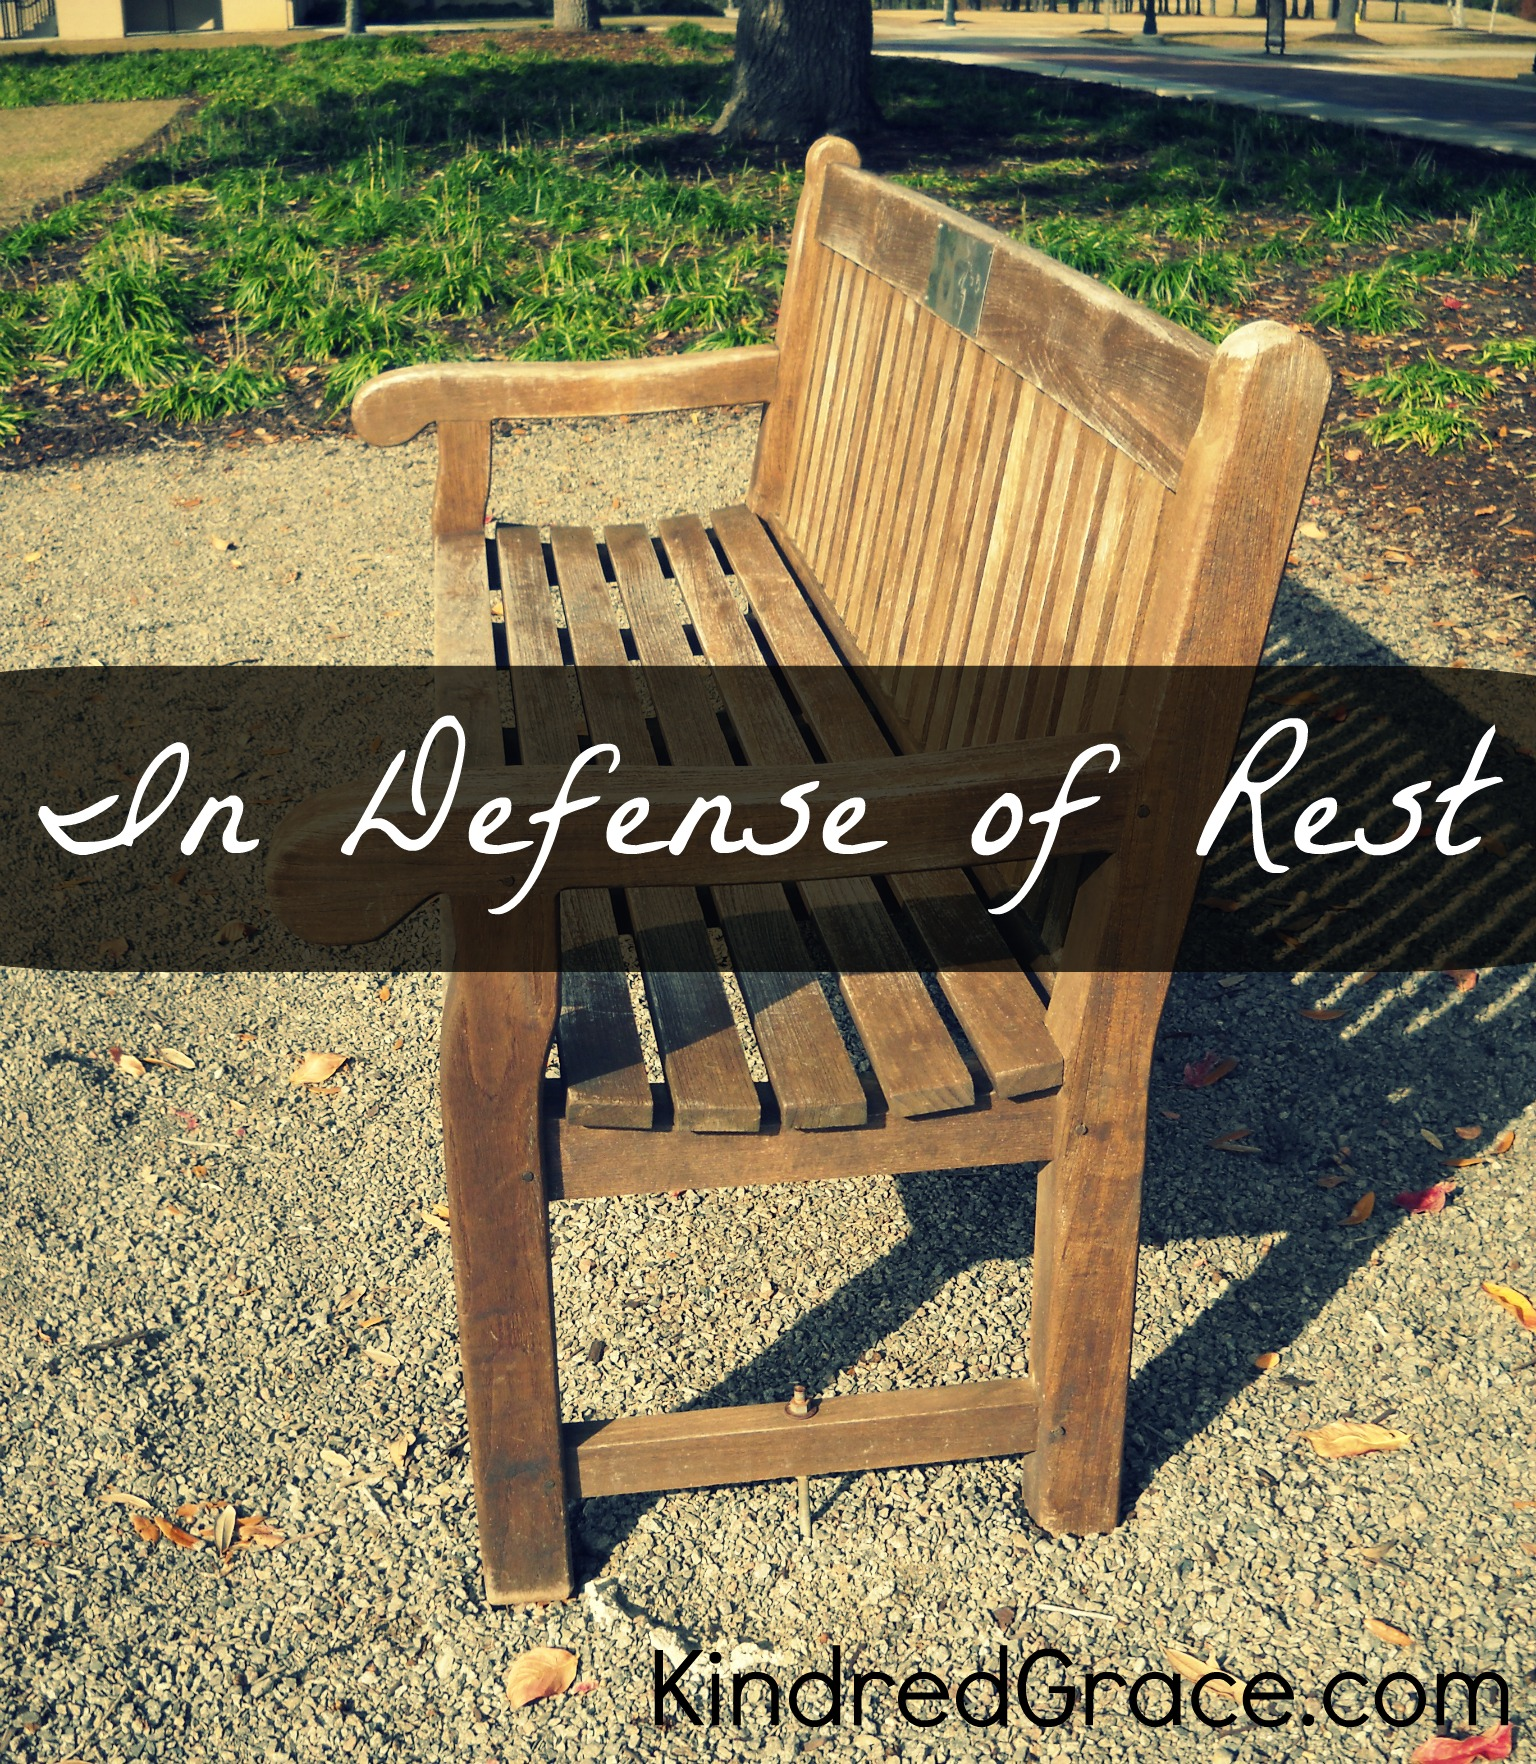 In Defense of Rest on @KindredGrace by @RachelleRea